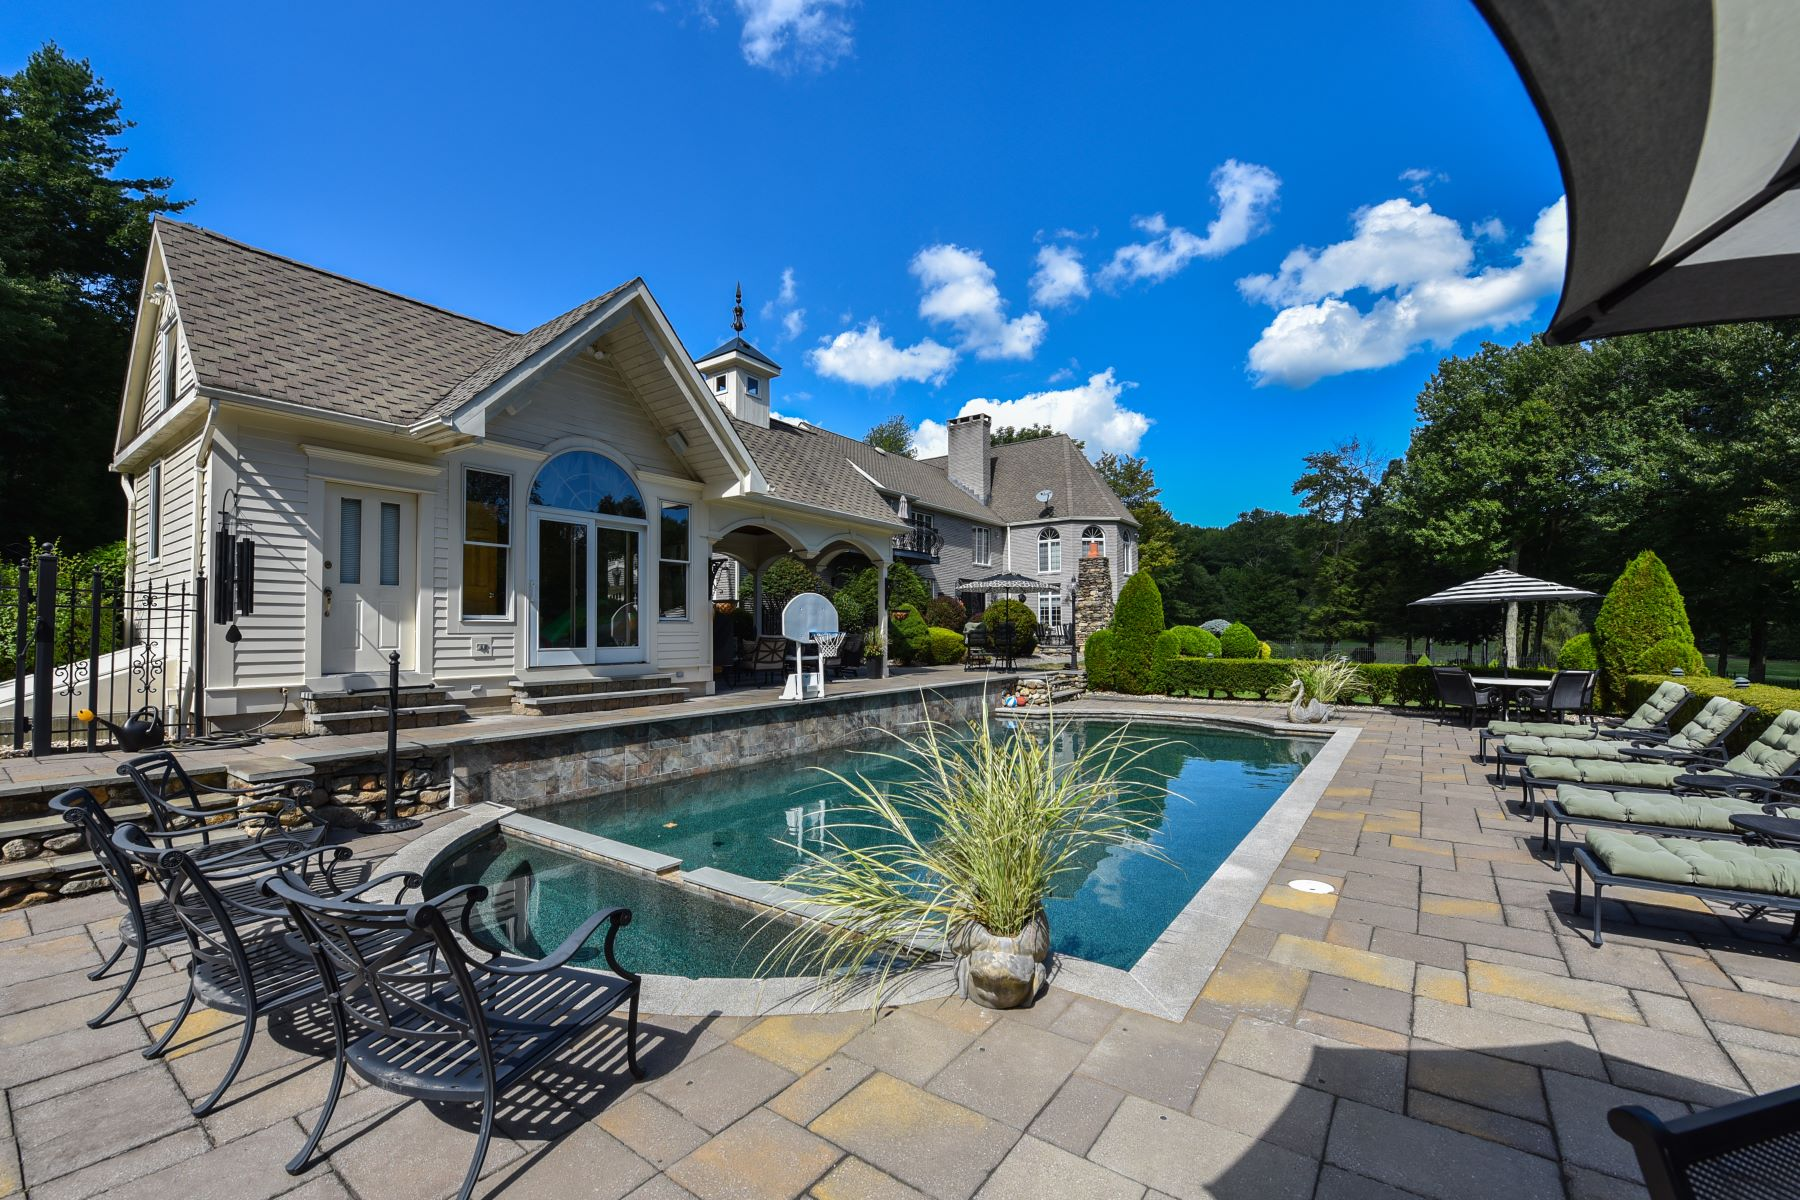 Additional photo for property listing at Impressive Private Compound on 21 Acres 31 Deer Run Road Barkhamsted, Connecticut 06063 United States